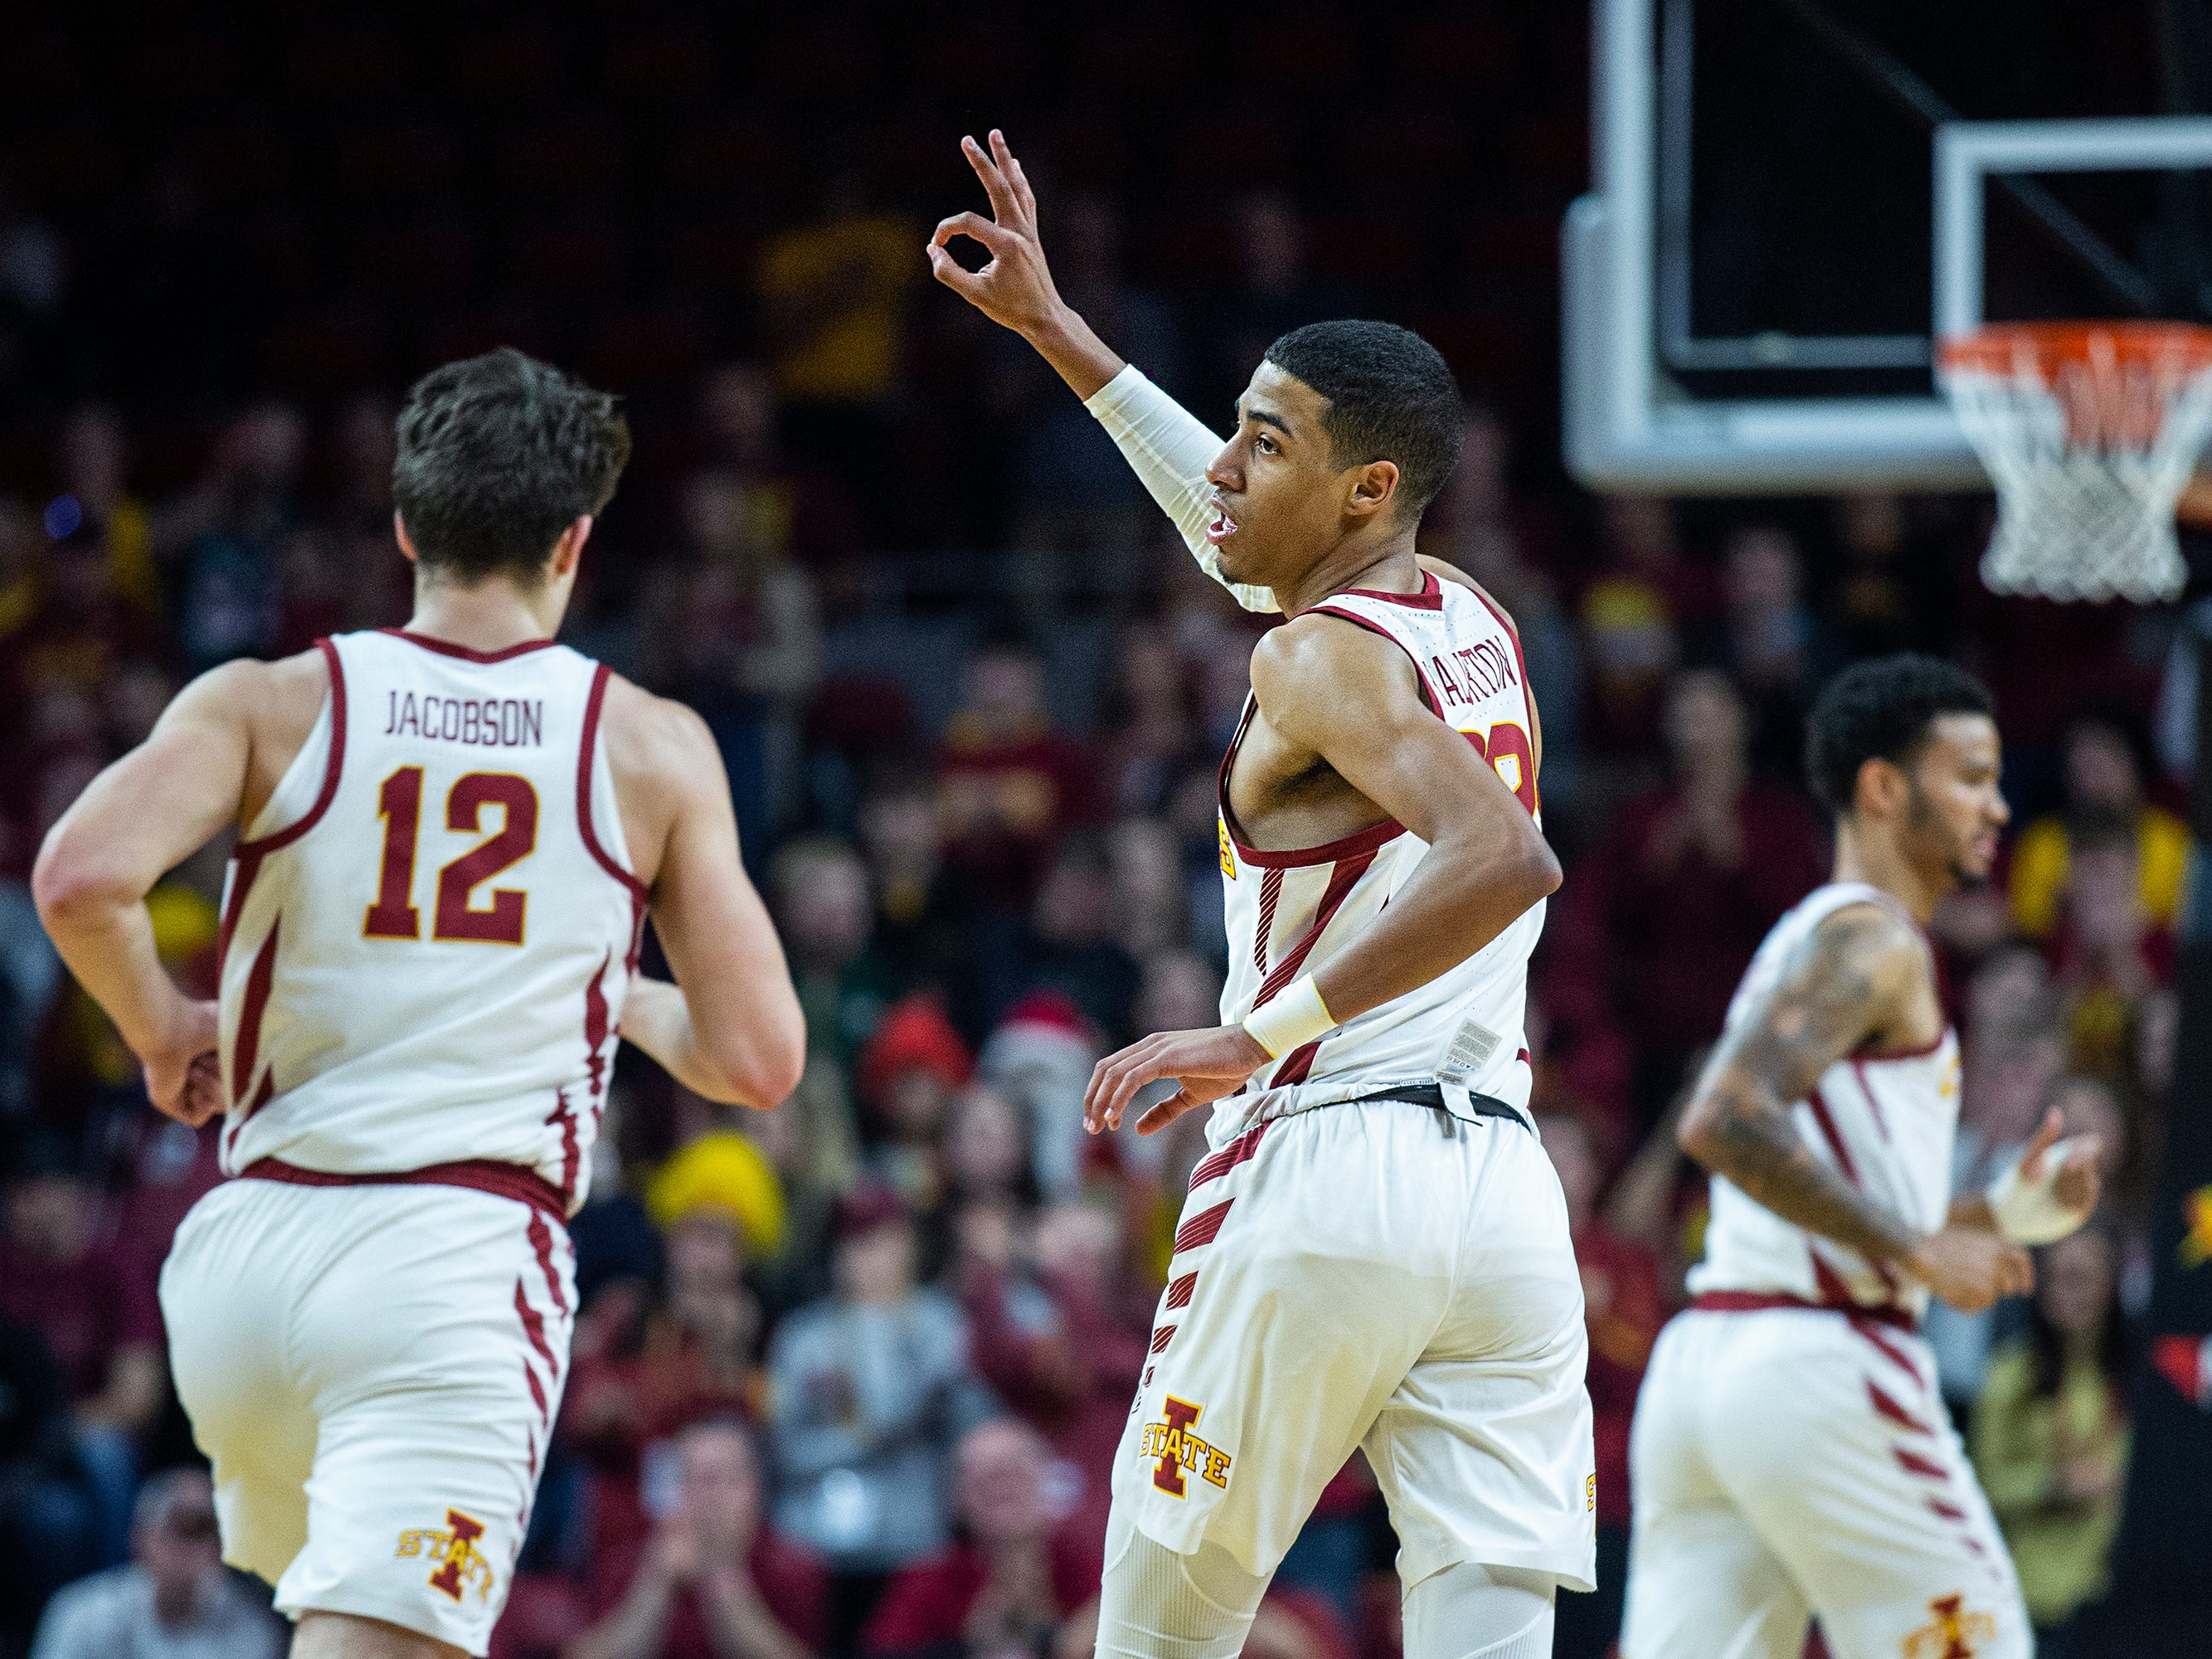 Iowa State's Tyrese Haliburton celebrates altering making a three-point shot during the Iowa State men's basketball game against Southern on Sunday, Dec. 9, 2018, in Hilton Coliseum.